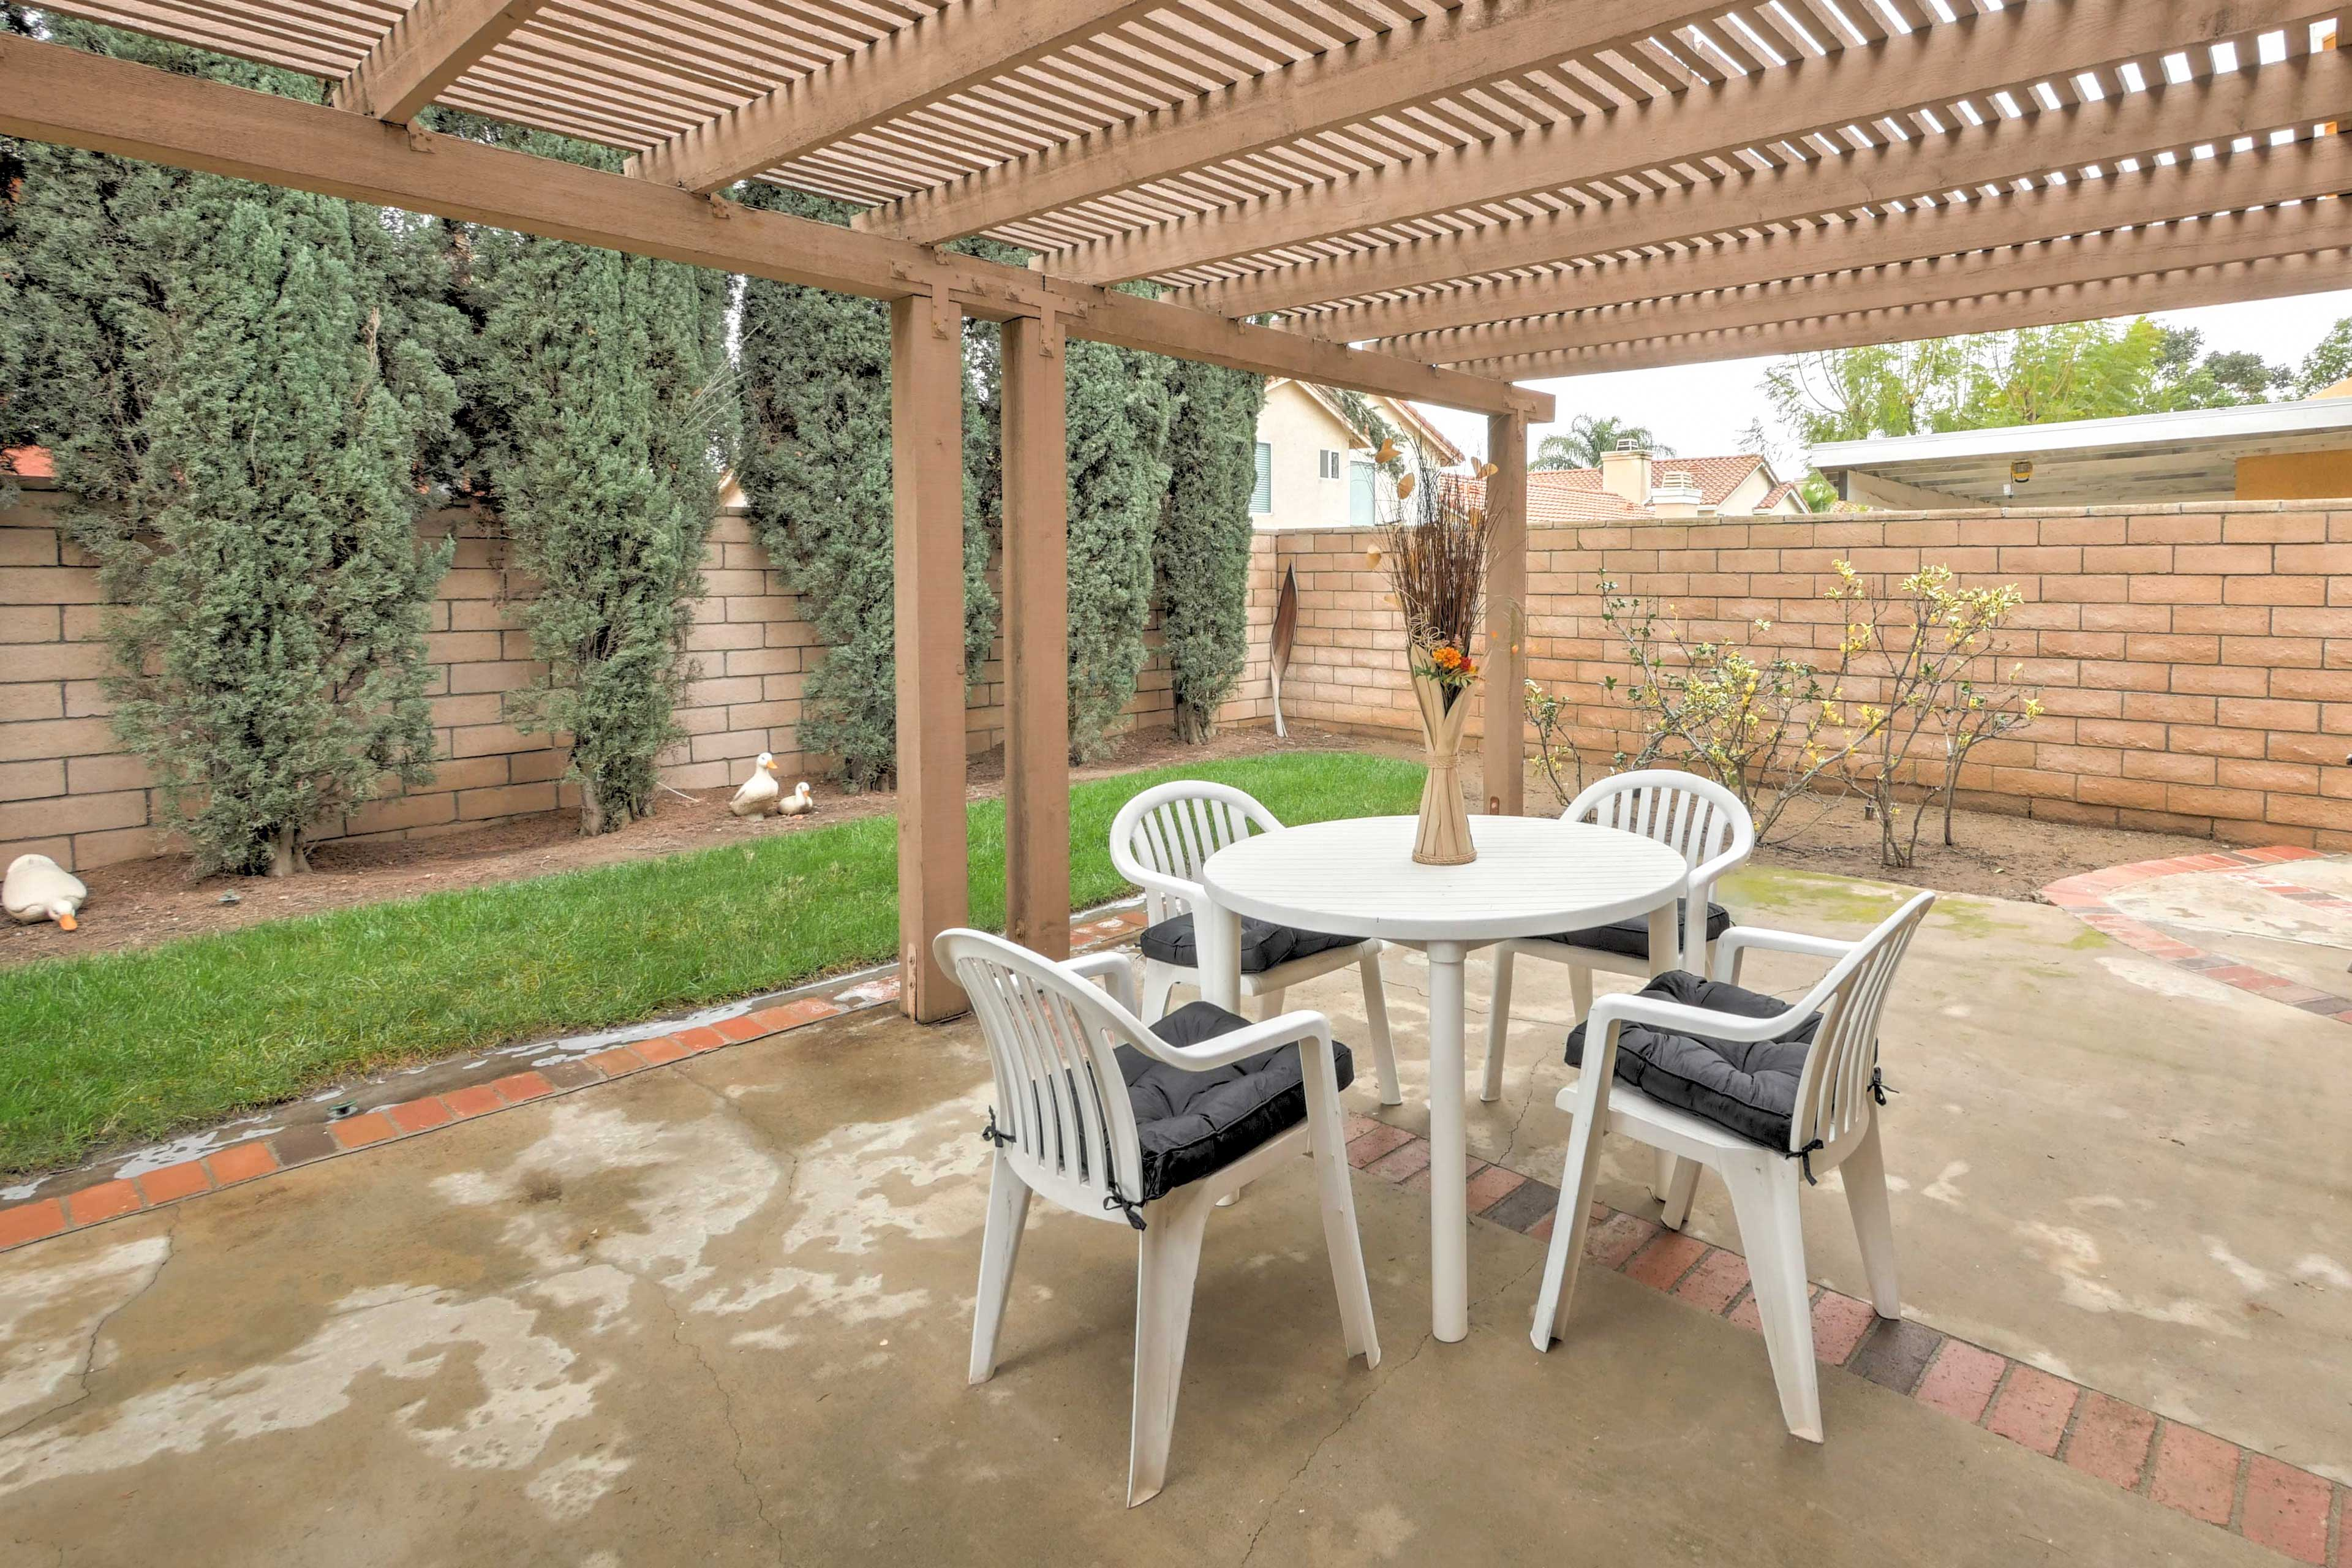 Enjoy breakfast, lunch, and dinner outside on the shaded outdoor patio.